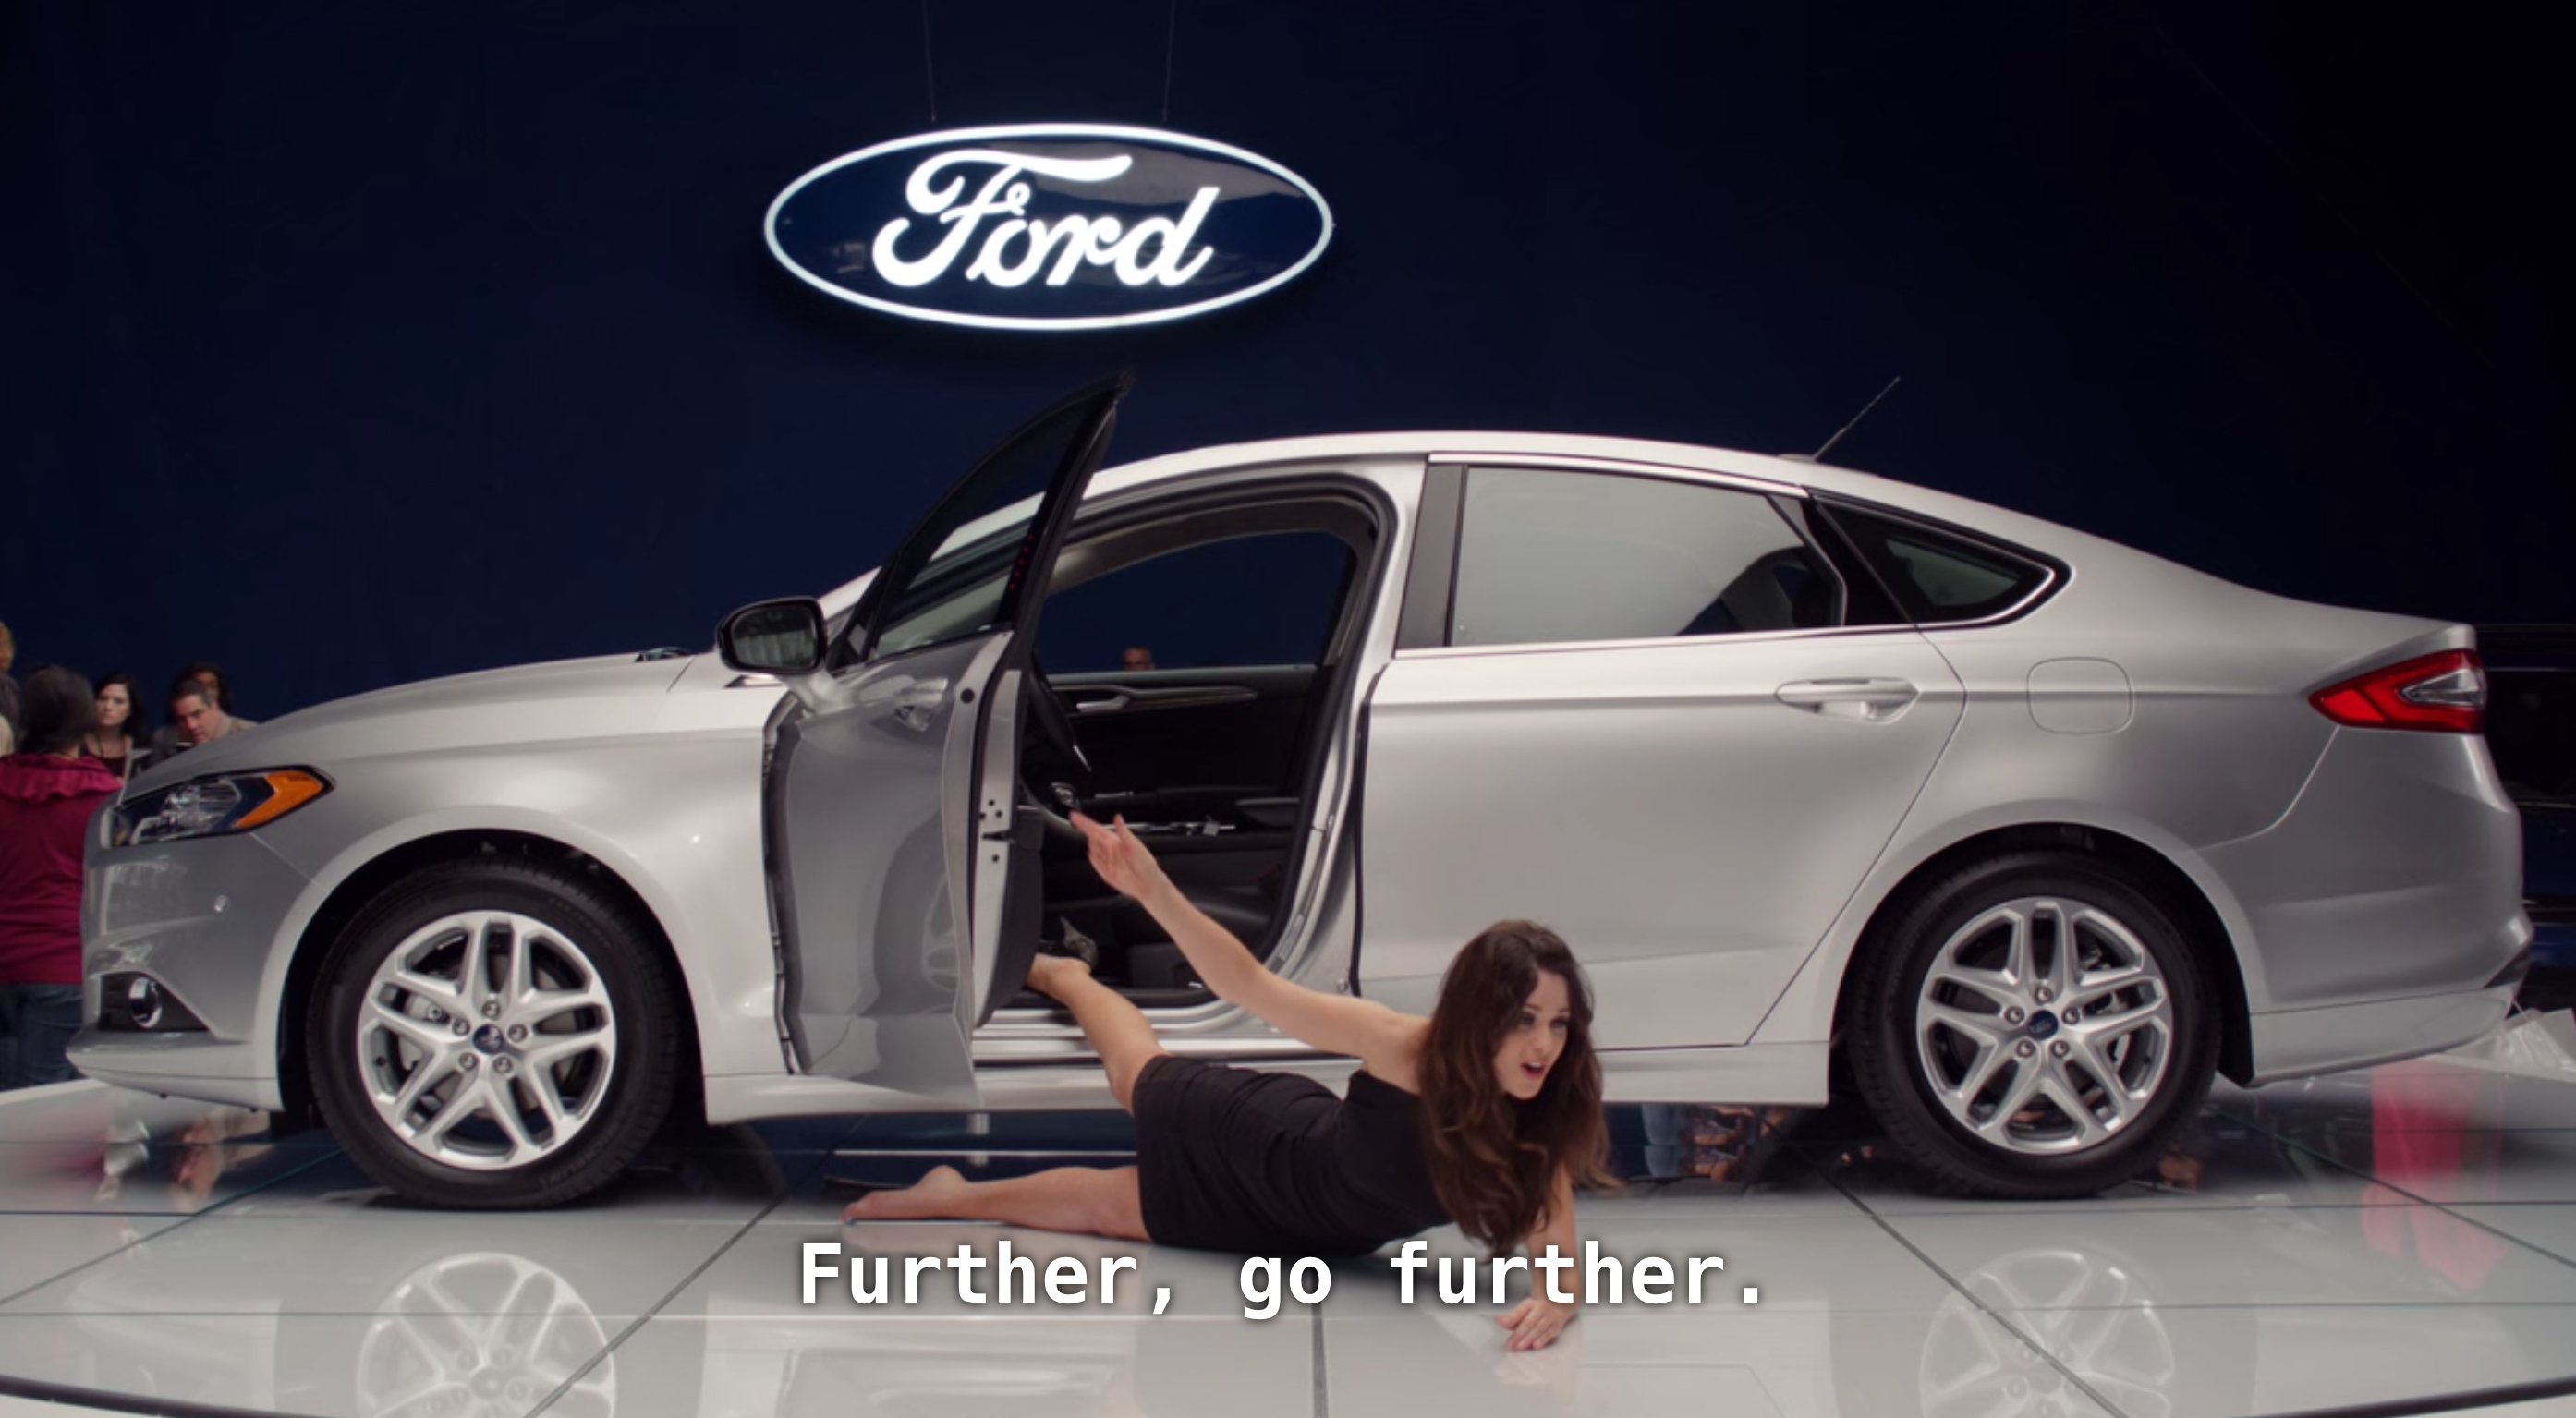 New Girl x Ford Fusion